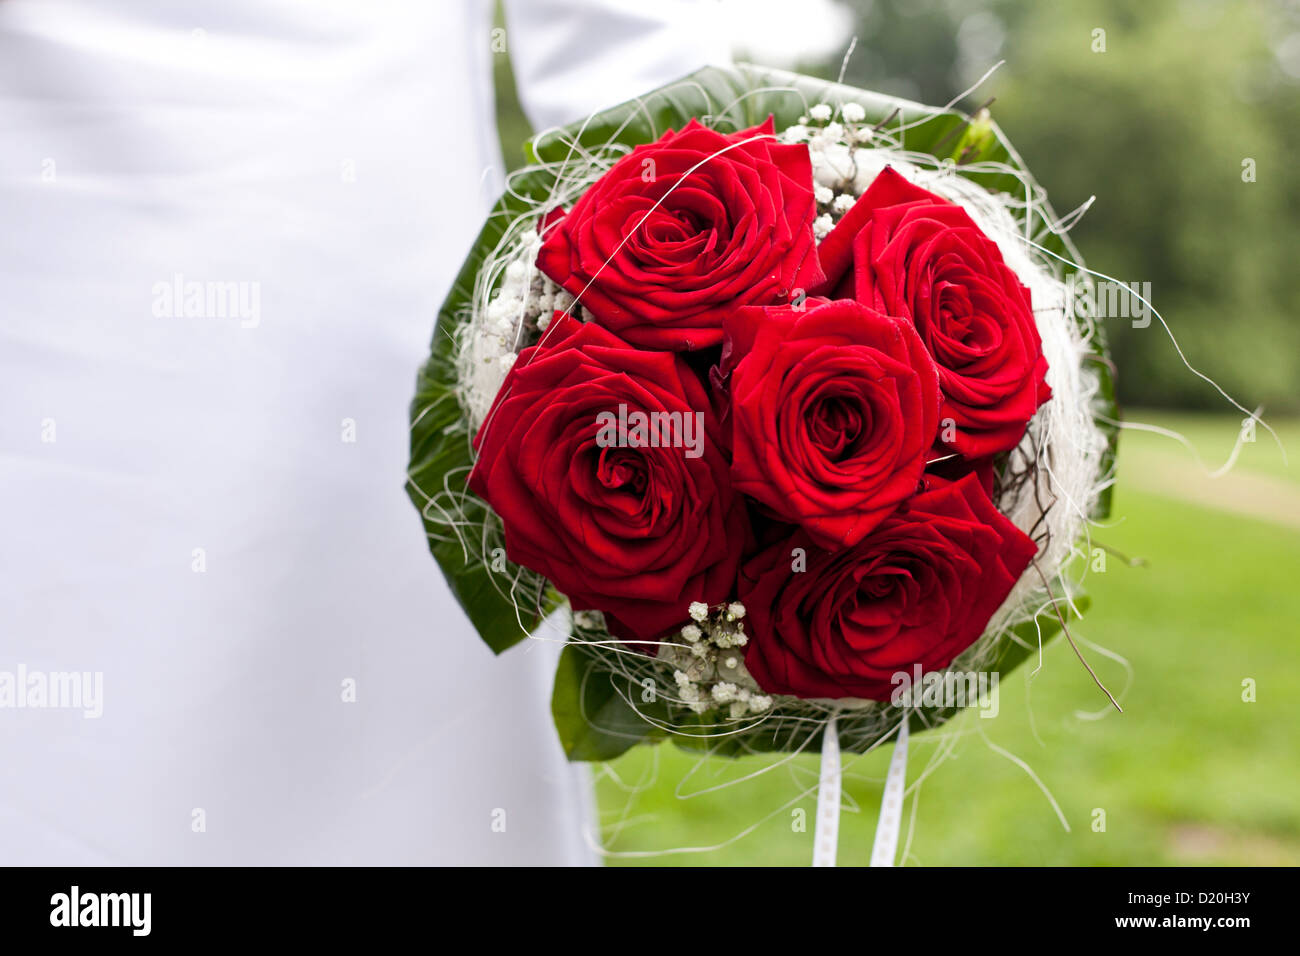 Red And White Bridal Bouquet Stock Photos & Red And White Bridal ...